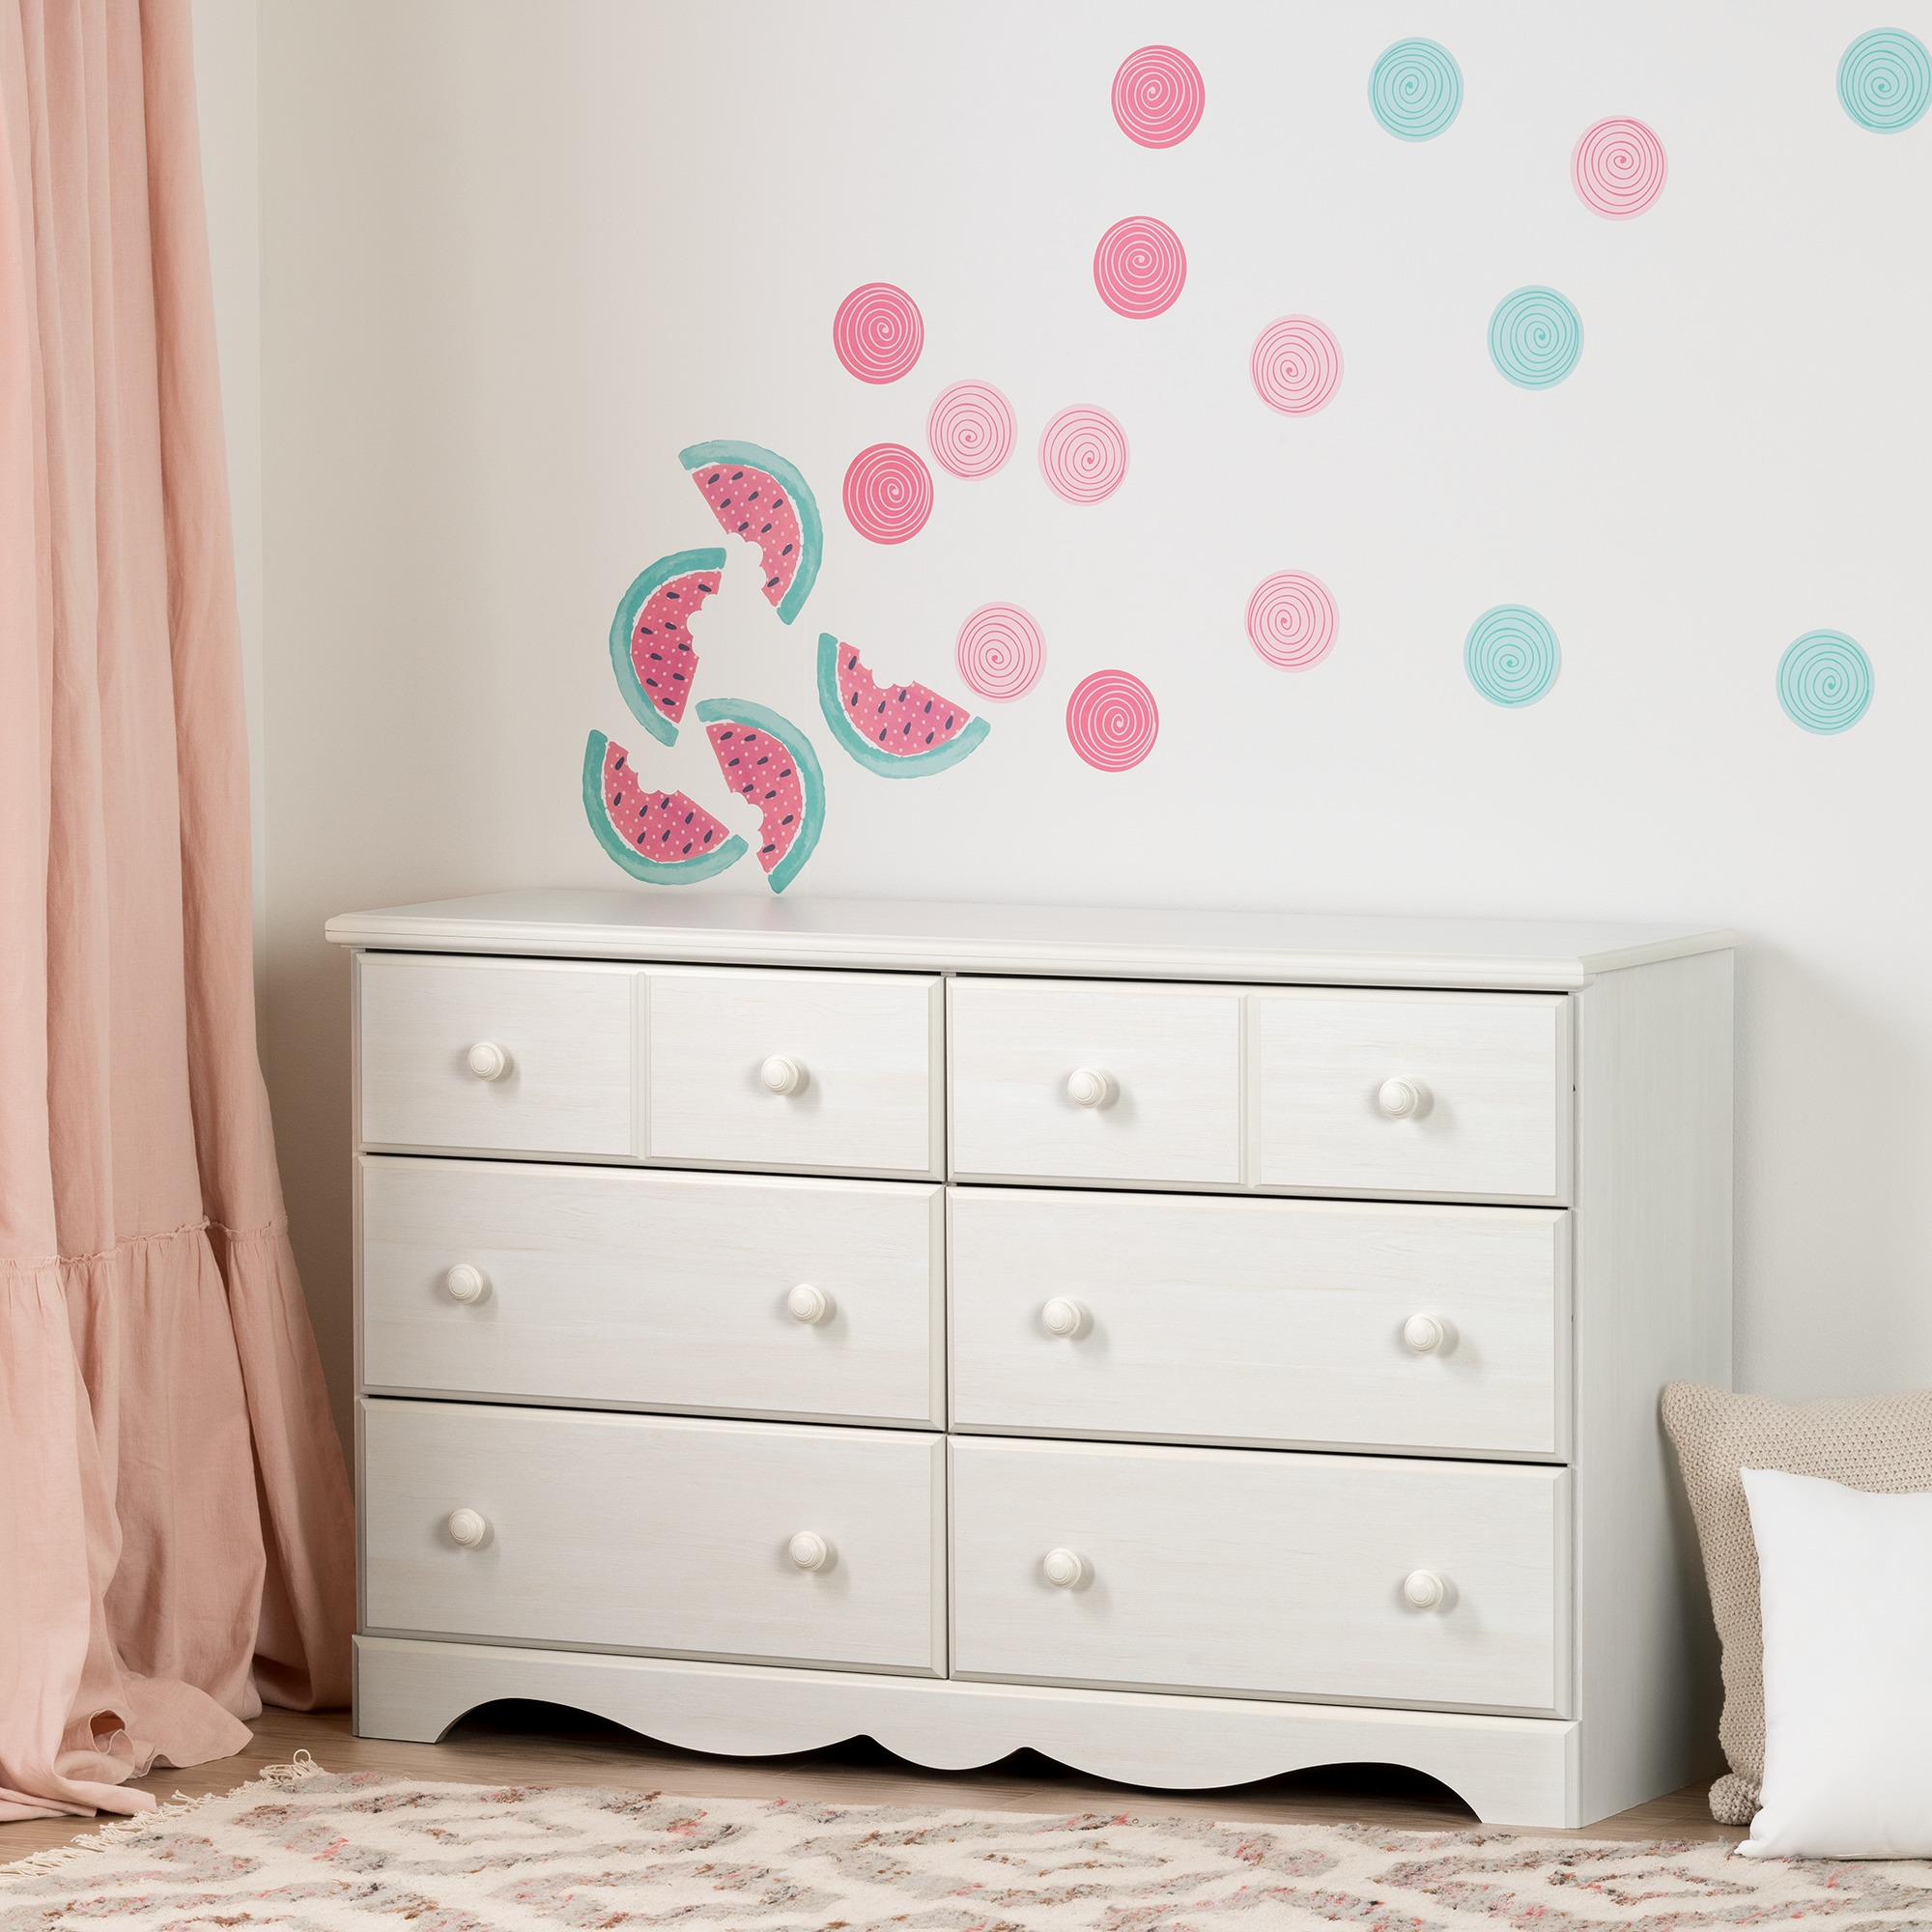 South S Summer Breeze Pure White And Pink 6 Drawer Double Dresser With Watermelons Dots Wall Decals